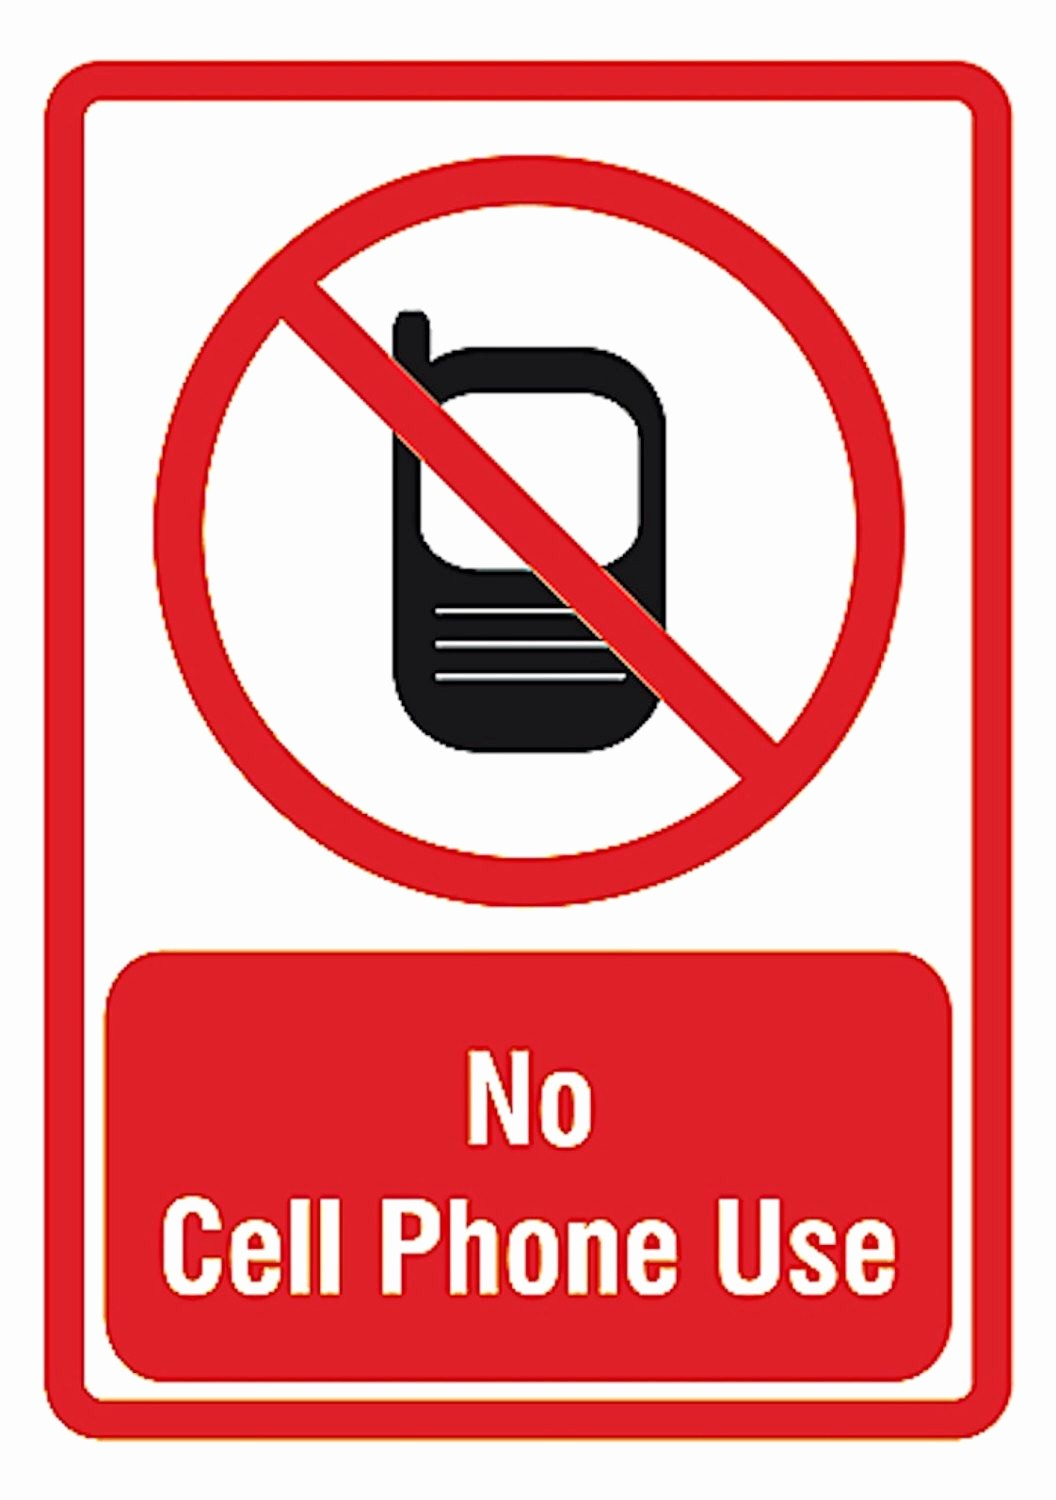 No Cell Phones Sign Printable Elegant No Cell Phone Use Private area Privacy Quality Decor Sign